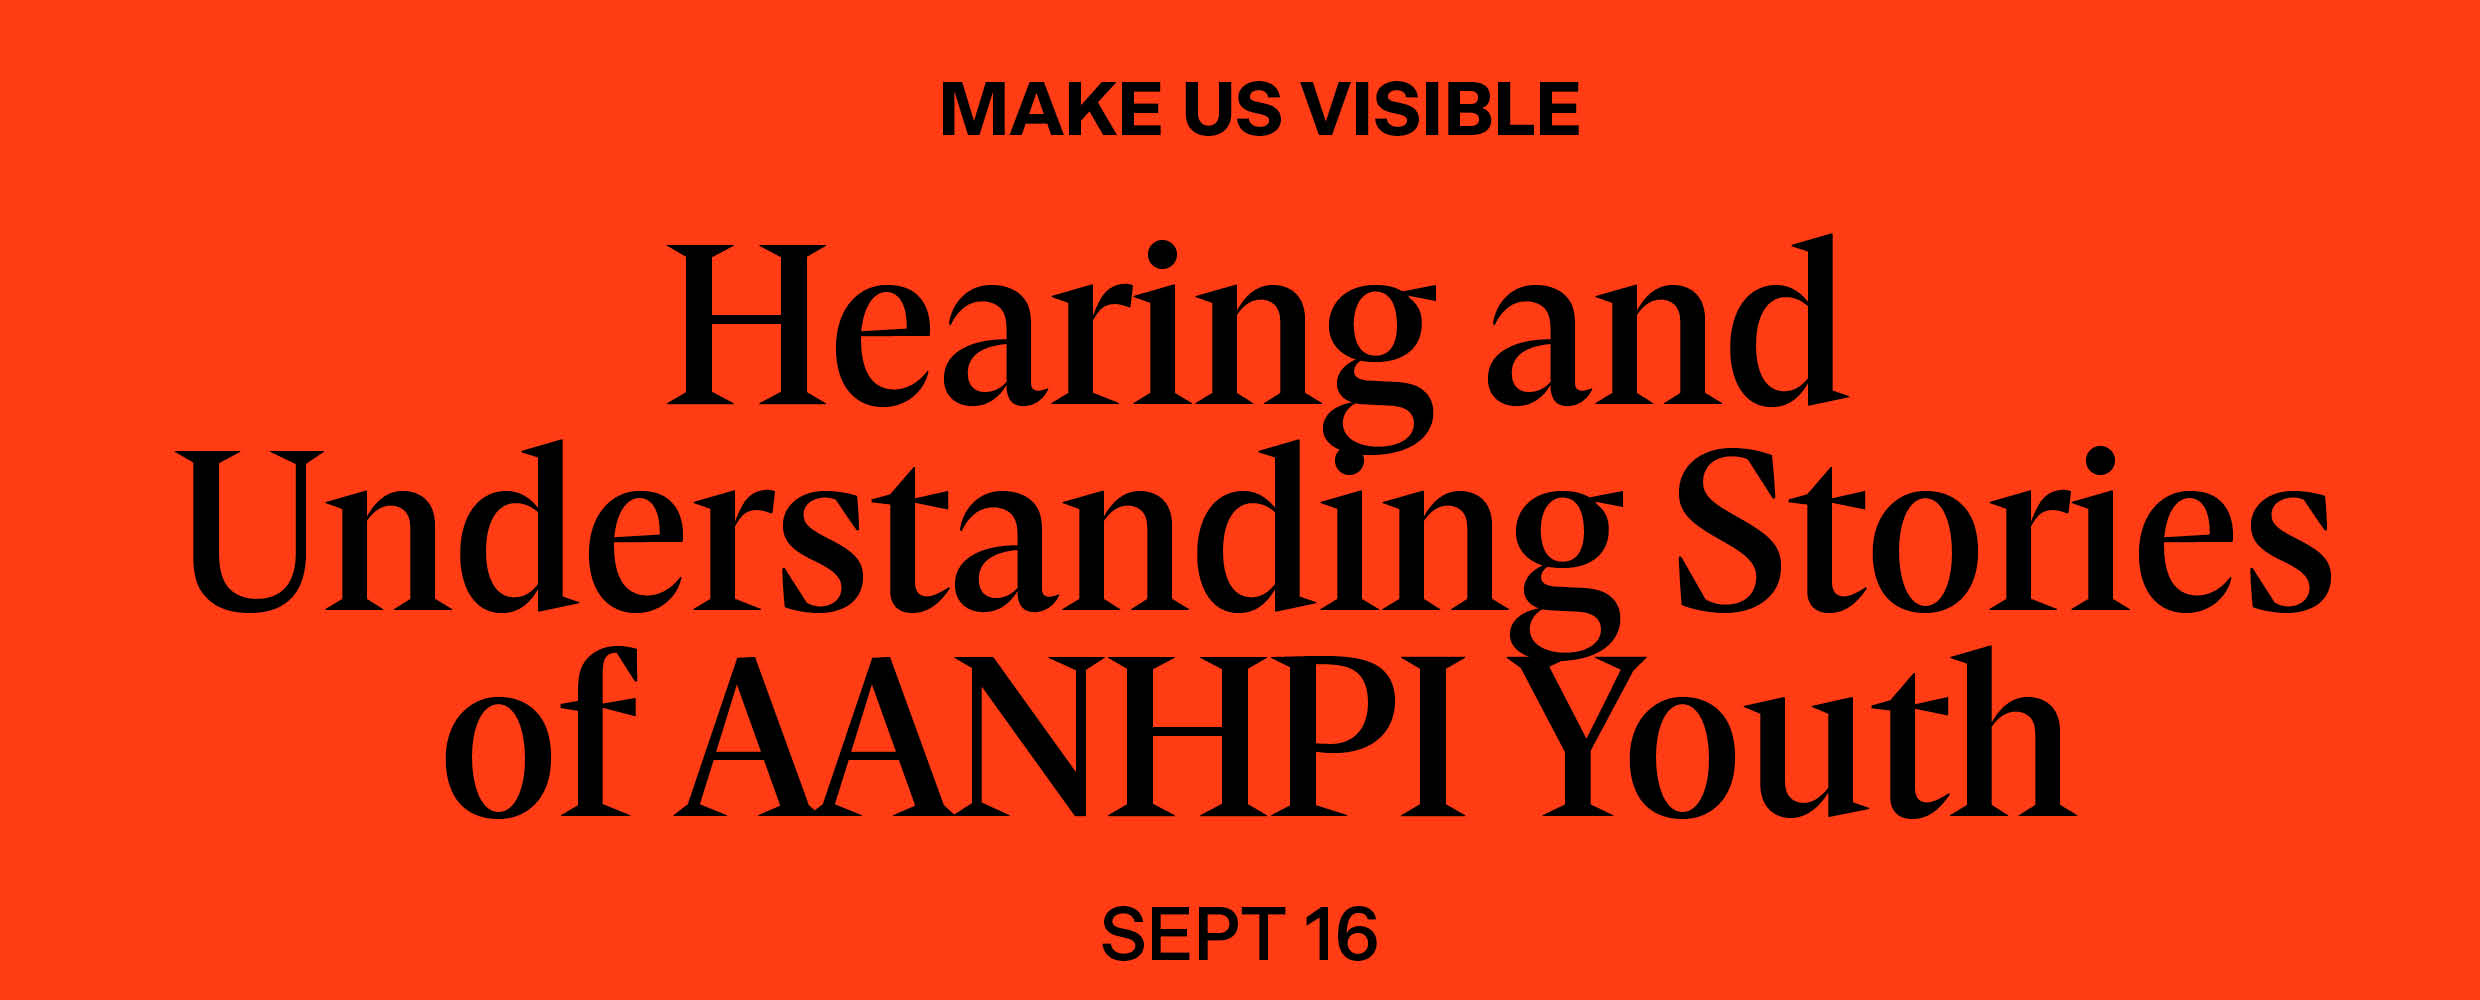 Make Us Visible: Hearing and Understanding the Stories of AAPI Youth